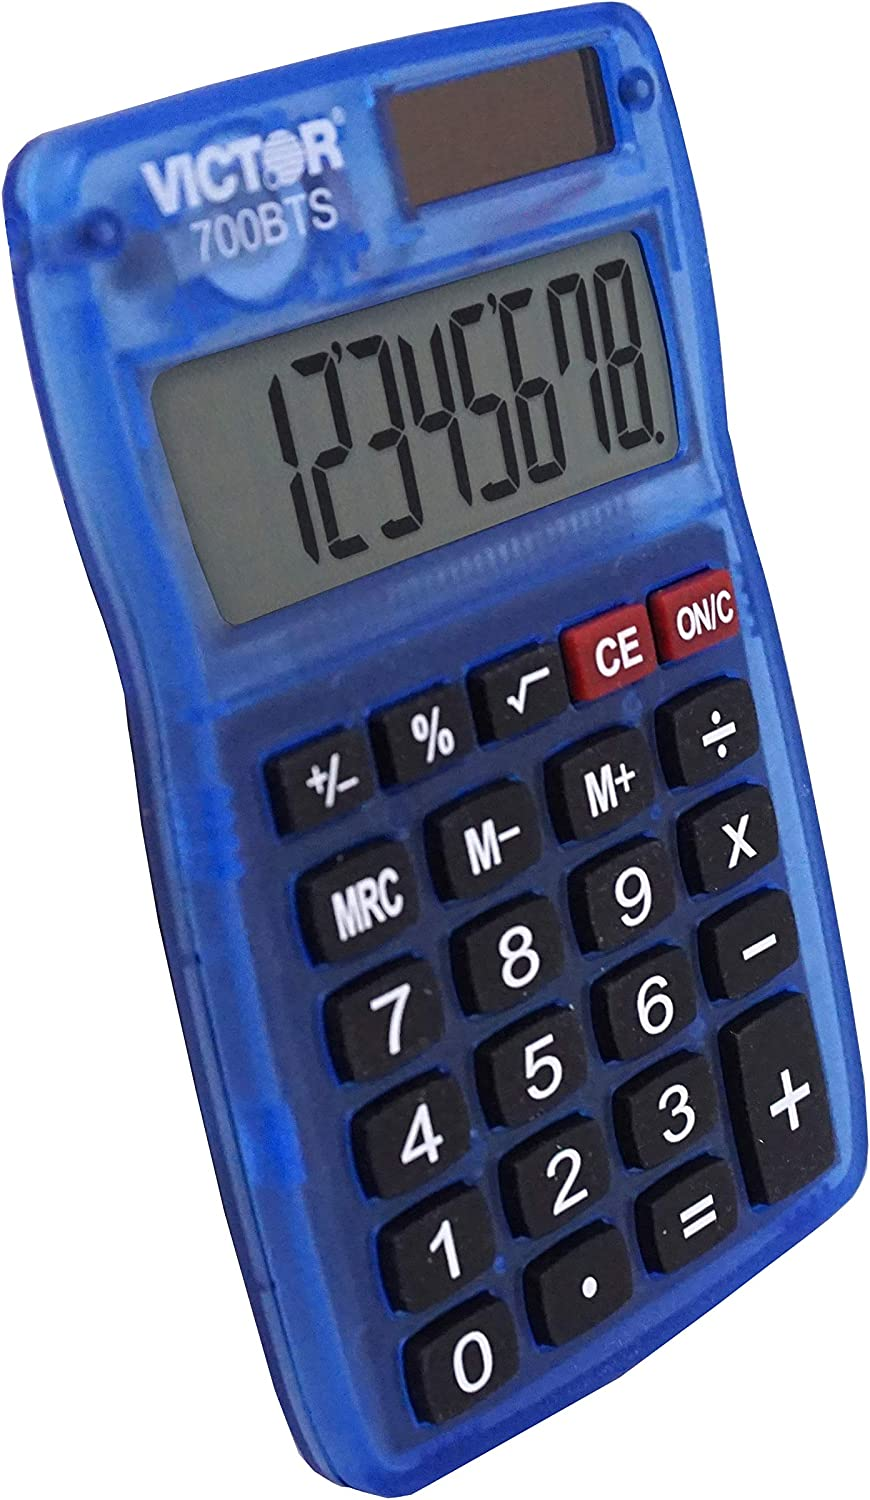 Victor 700BTS Pocket Calculator Red, Green, or Blue Assorted Colors